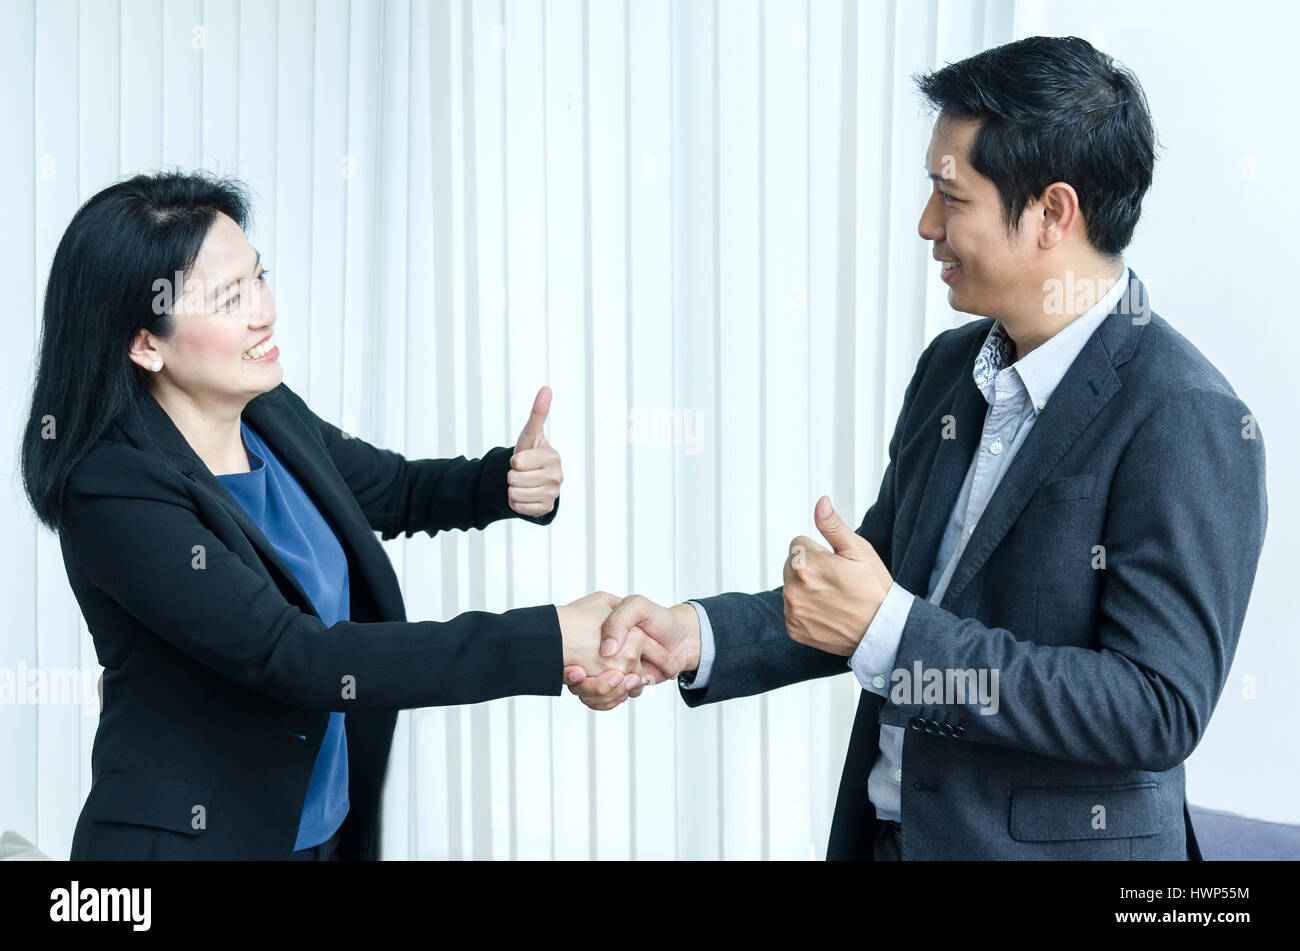 Business people handshake greeting deal at work photo free download - Success Business Team Concept Asian Woman And Man Handshake And Showing Thumbs Up